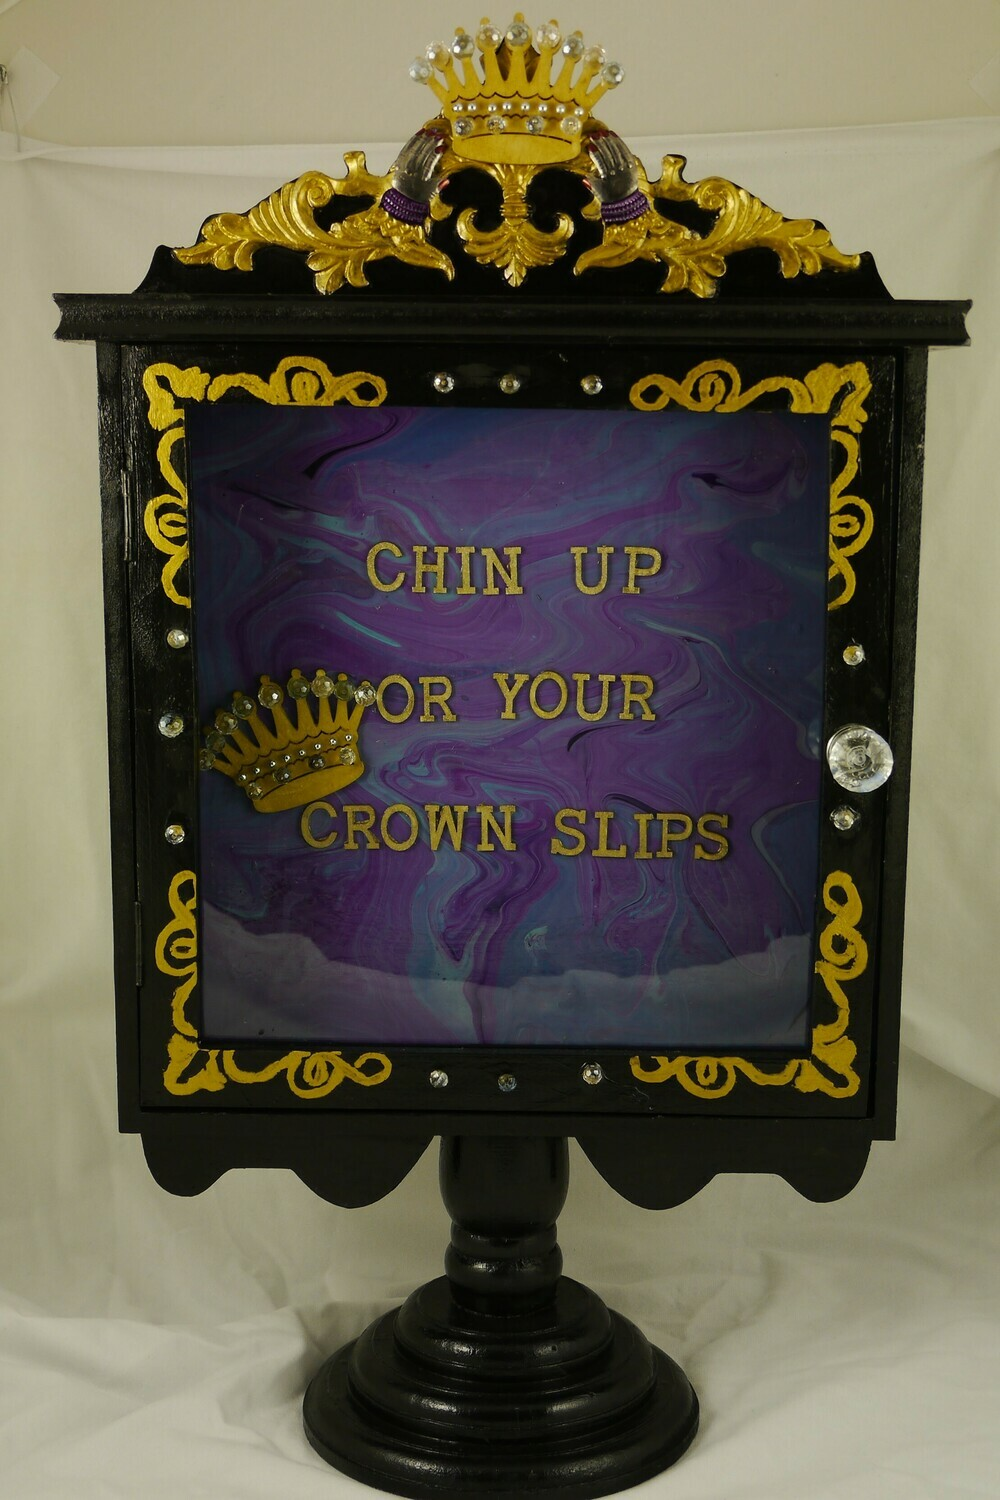 Chin Up Or Your Crown Slips